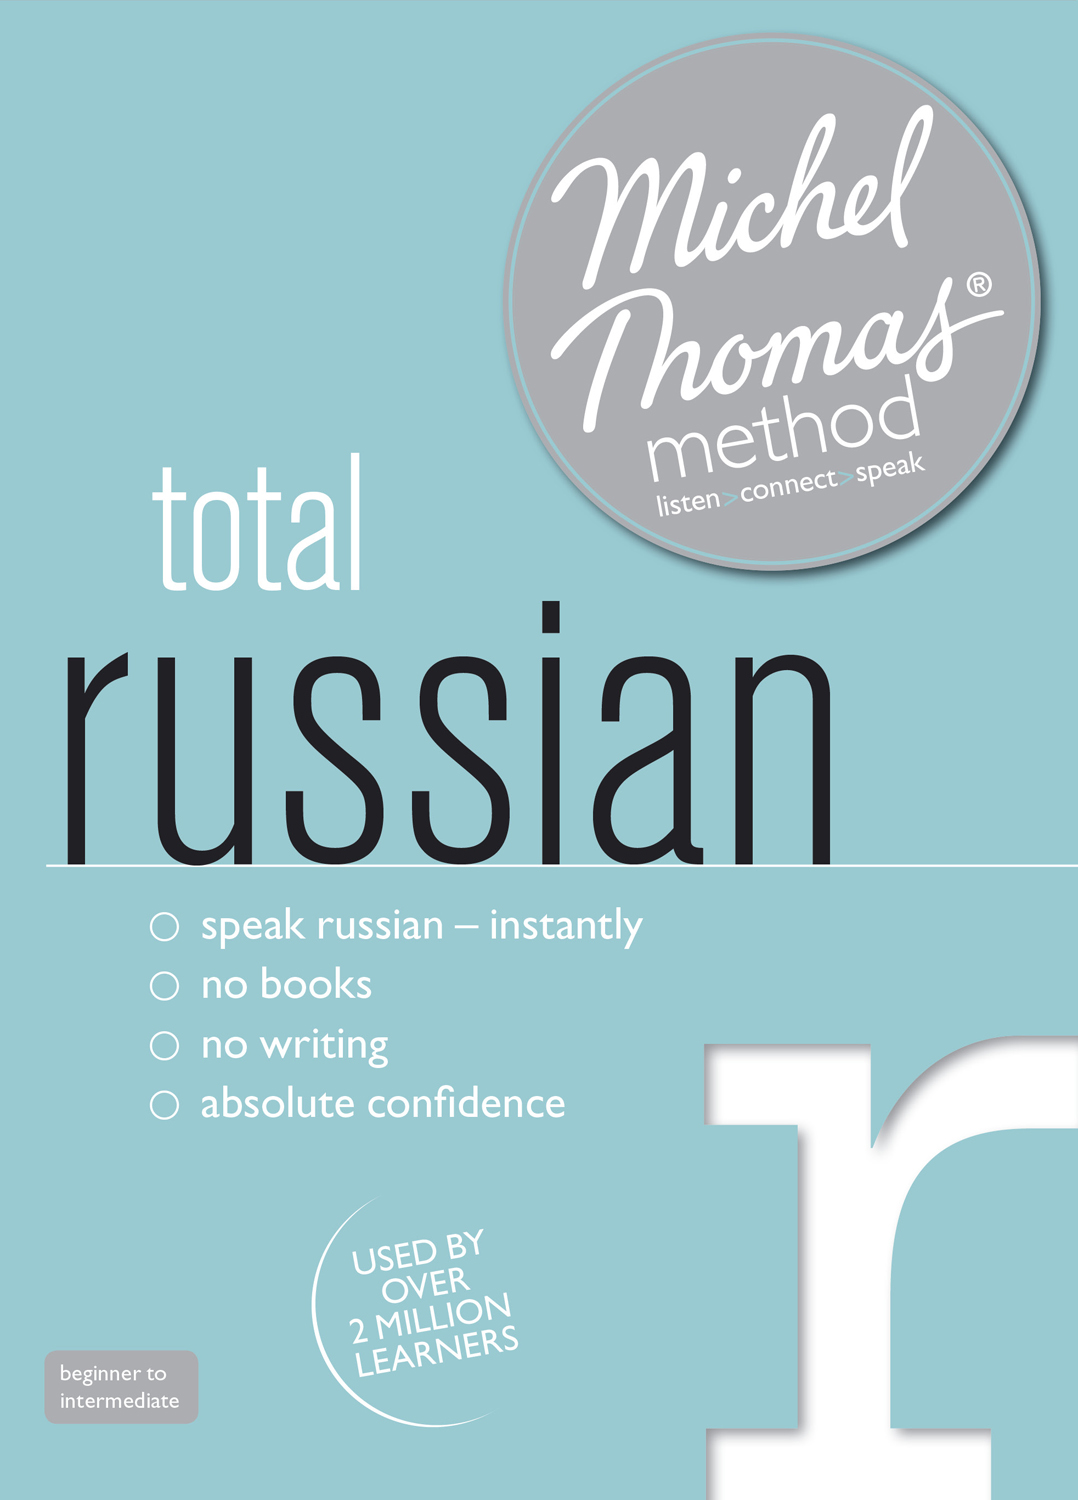 Russian Language Information From 53